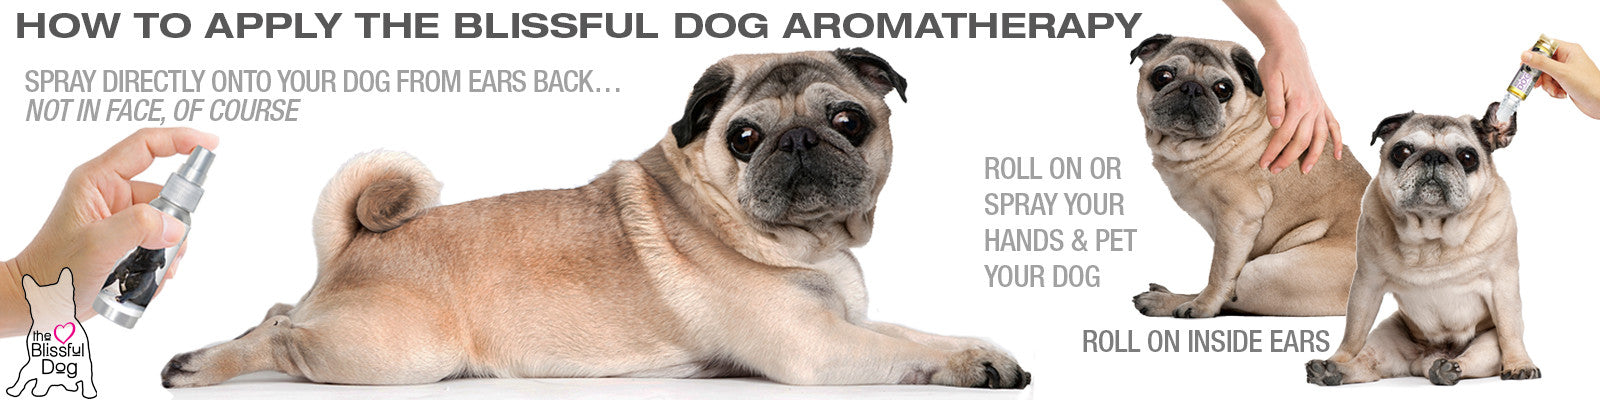 APPLY AROMATHERAPY SENIOR DOG